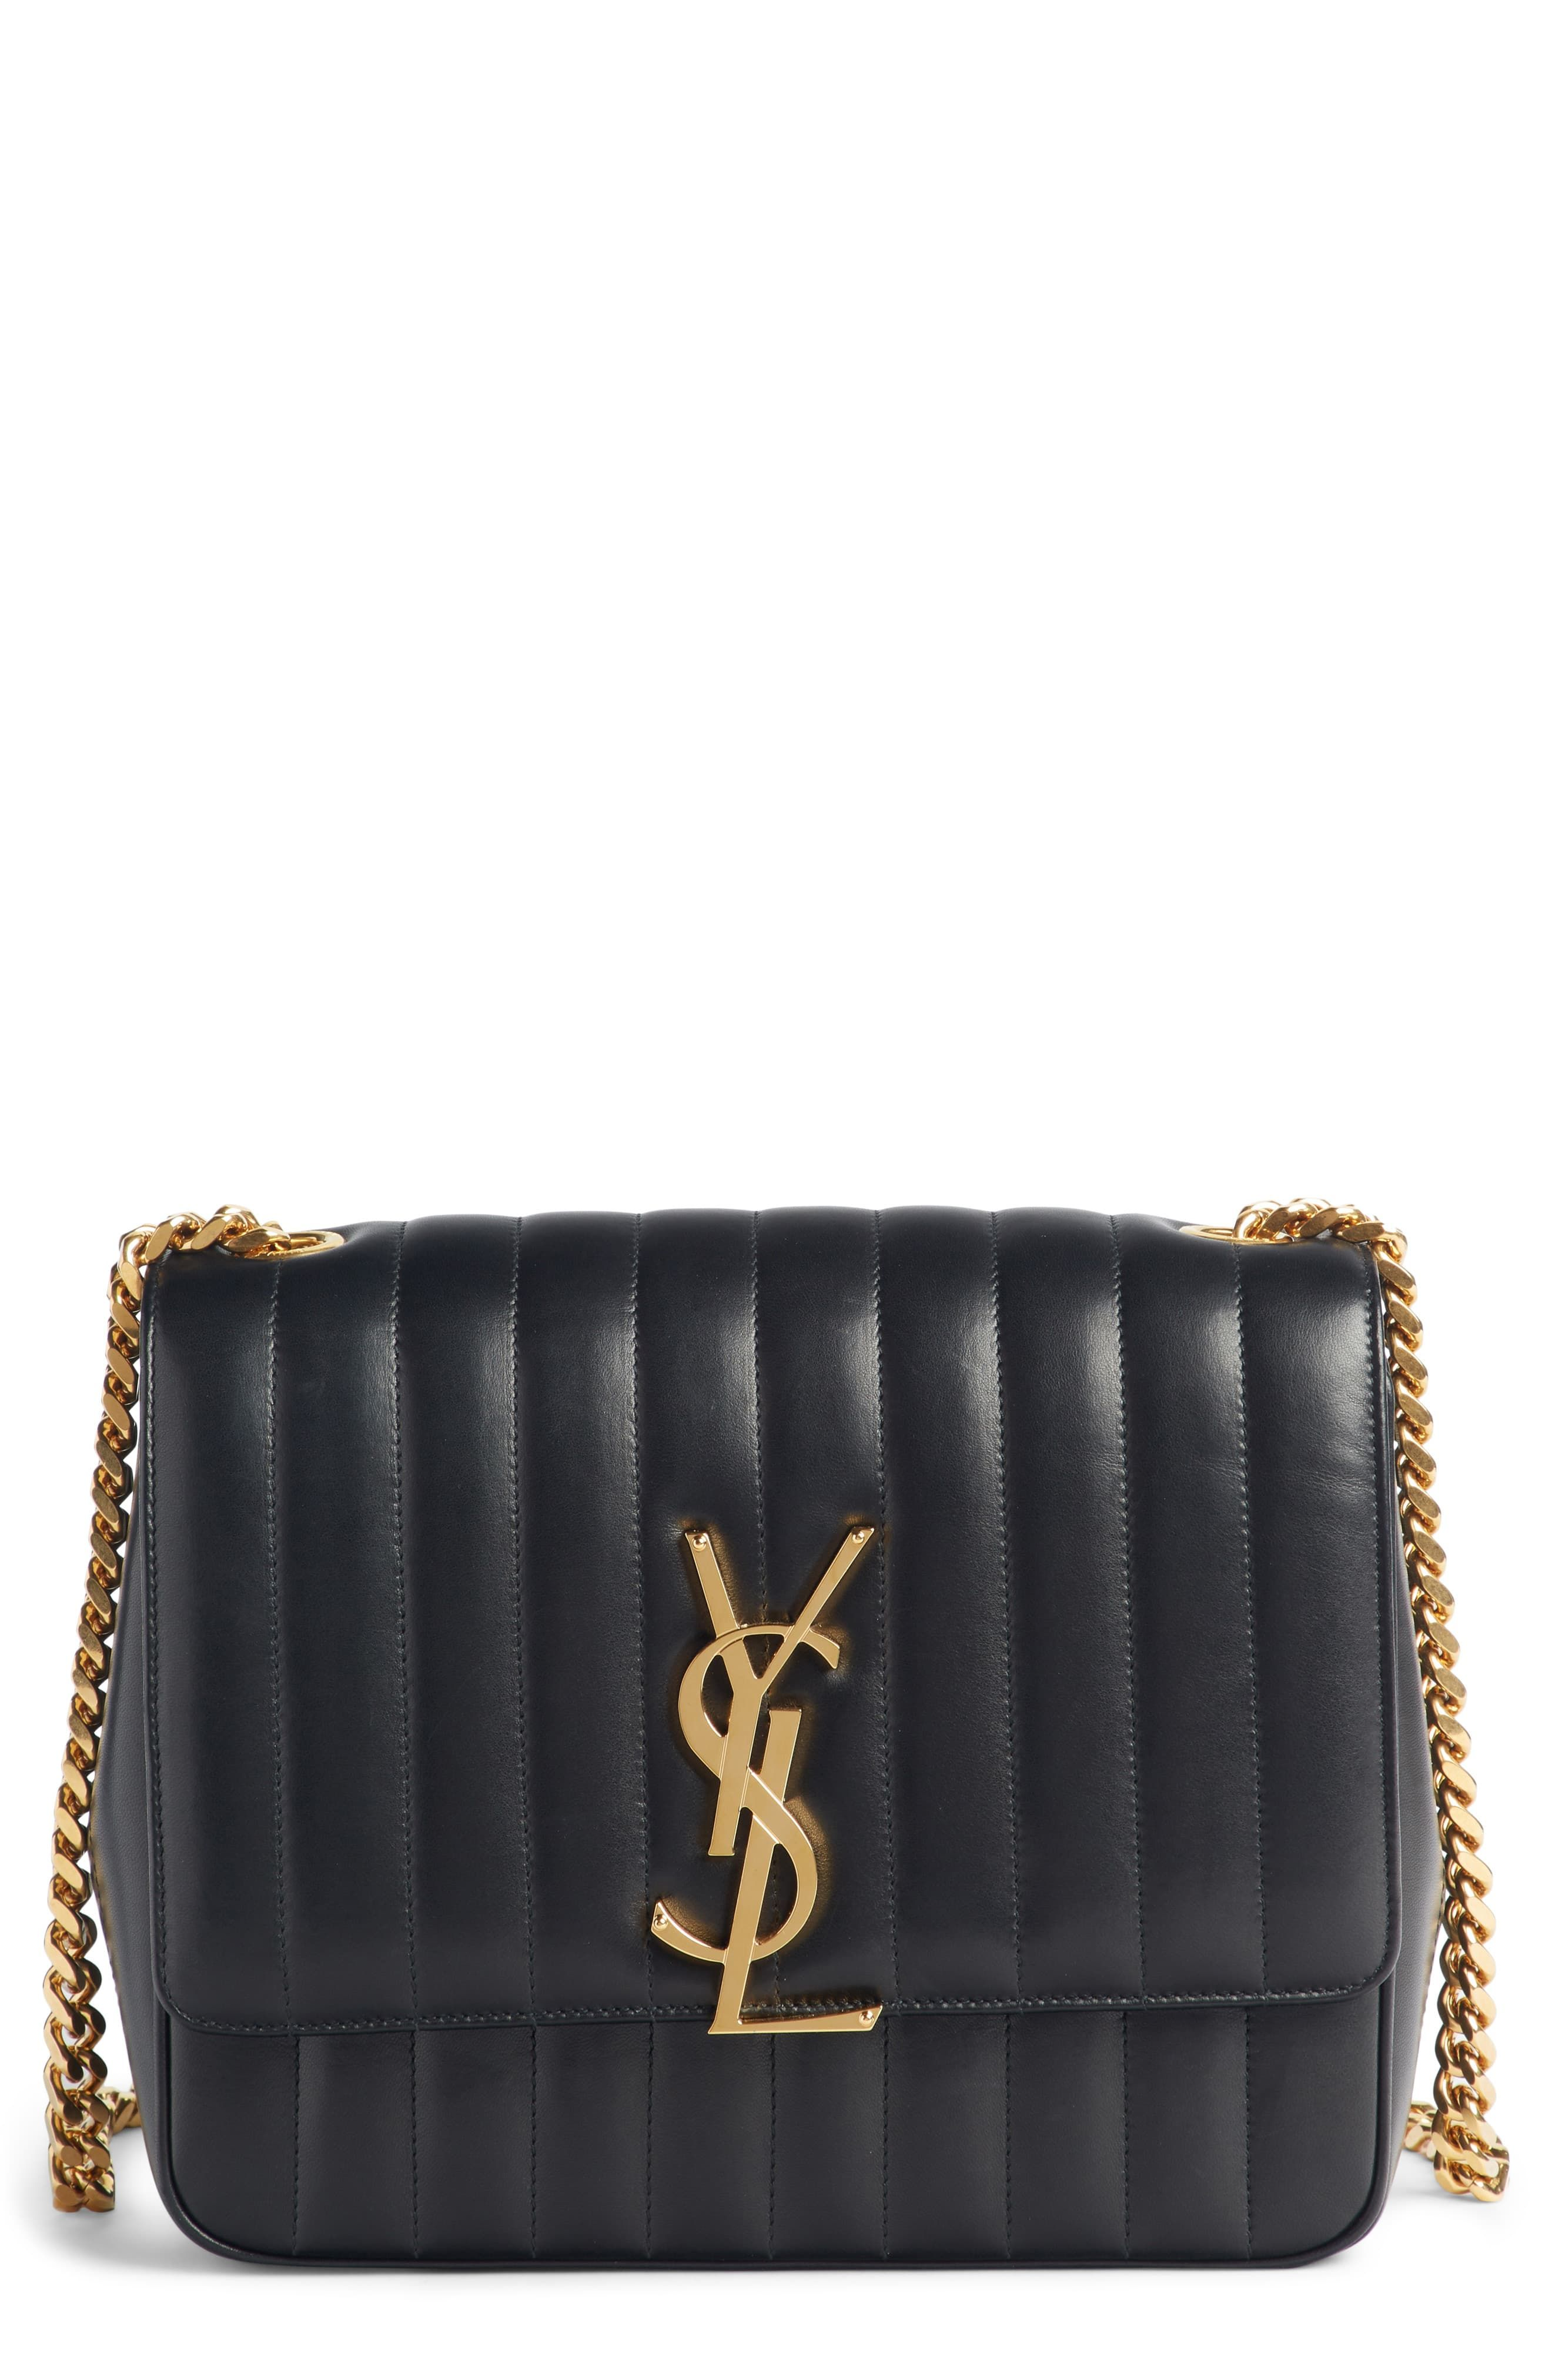 058c285375d Saint Laurent Large Vicky Leather Crossbody Bag - Black in 2019 ...